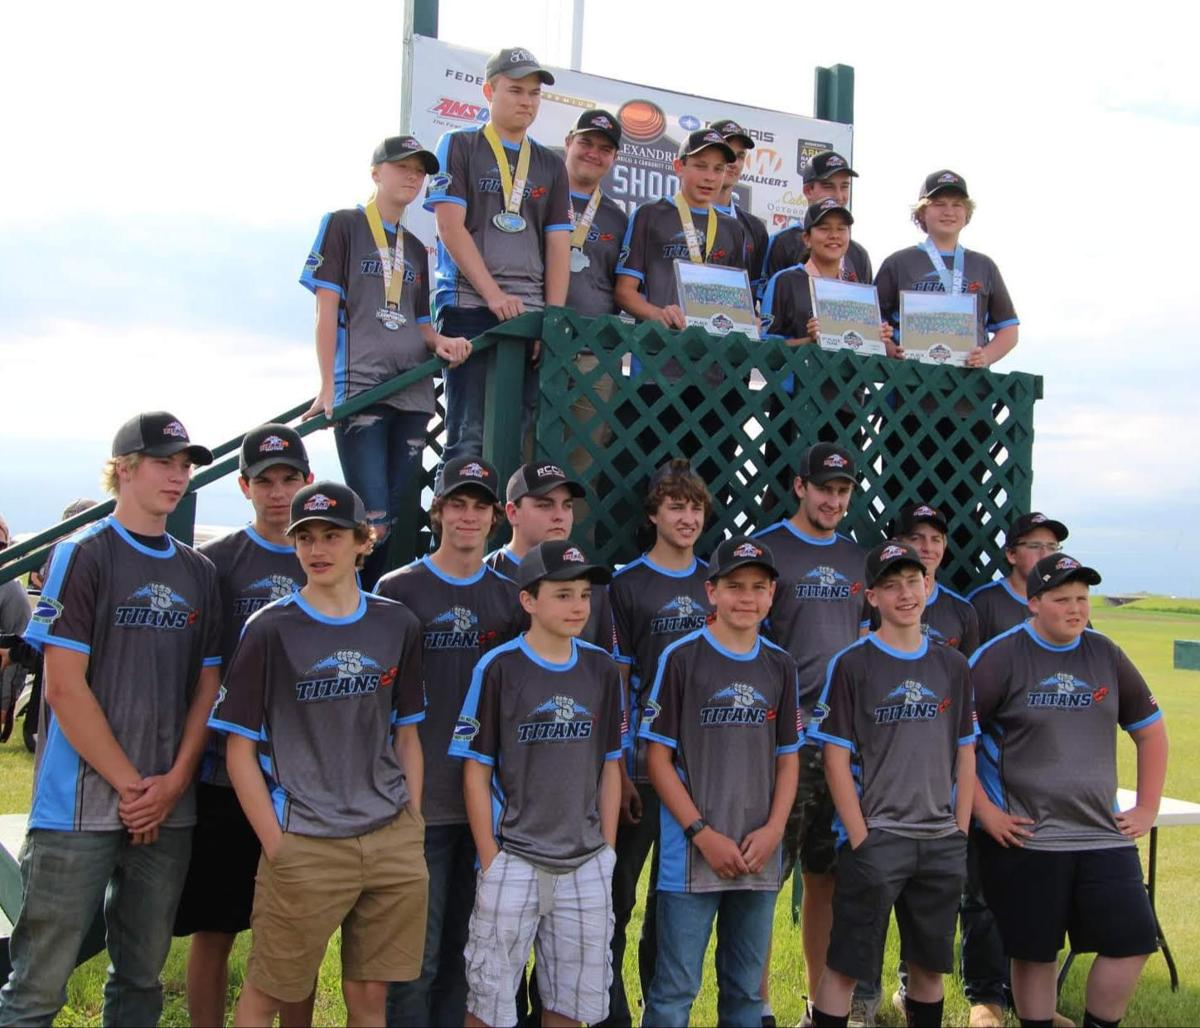 TCU takes 6th place at state shooting championship